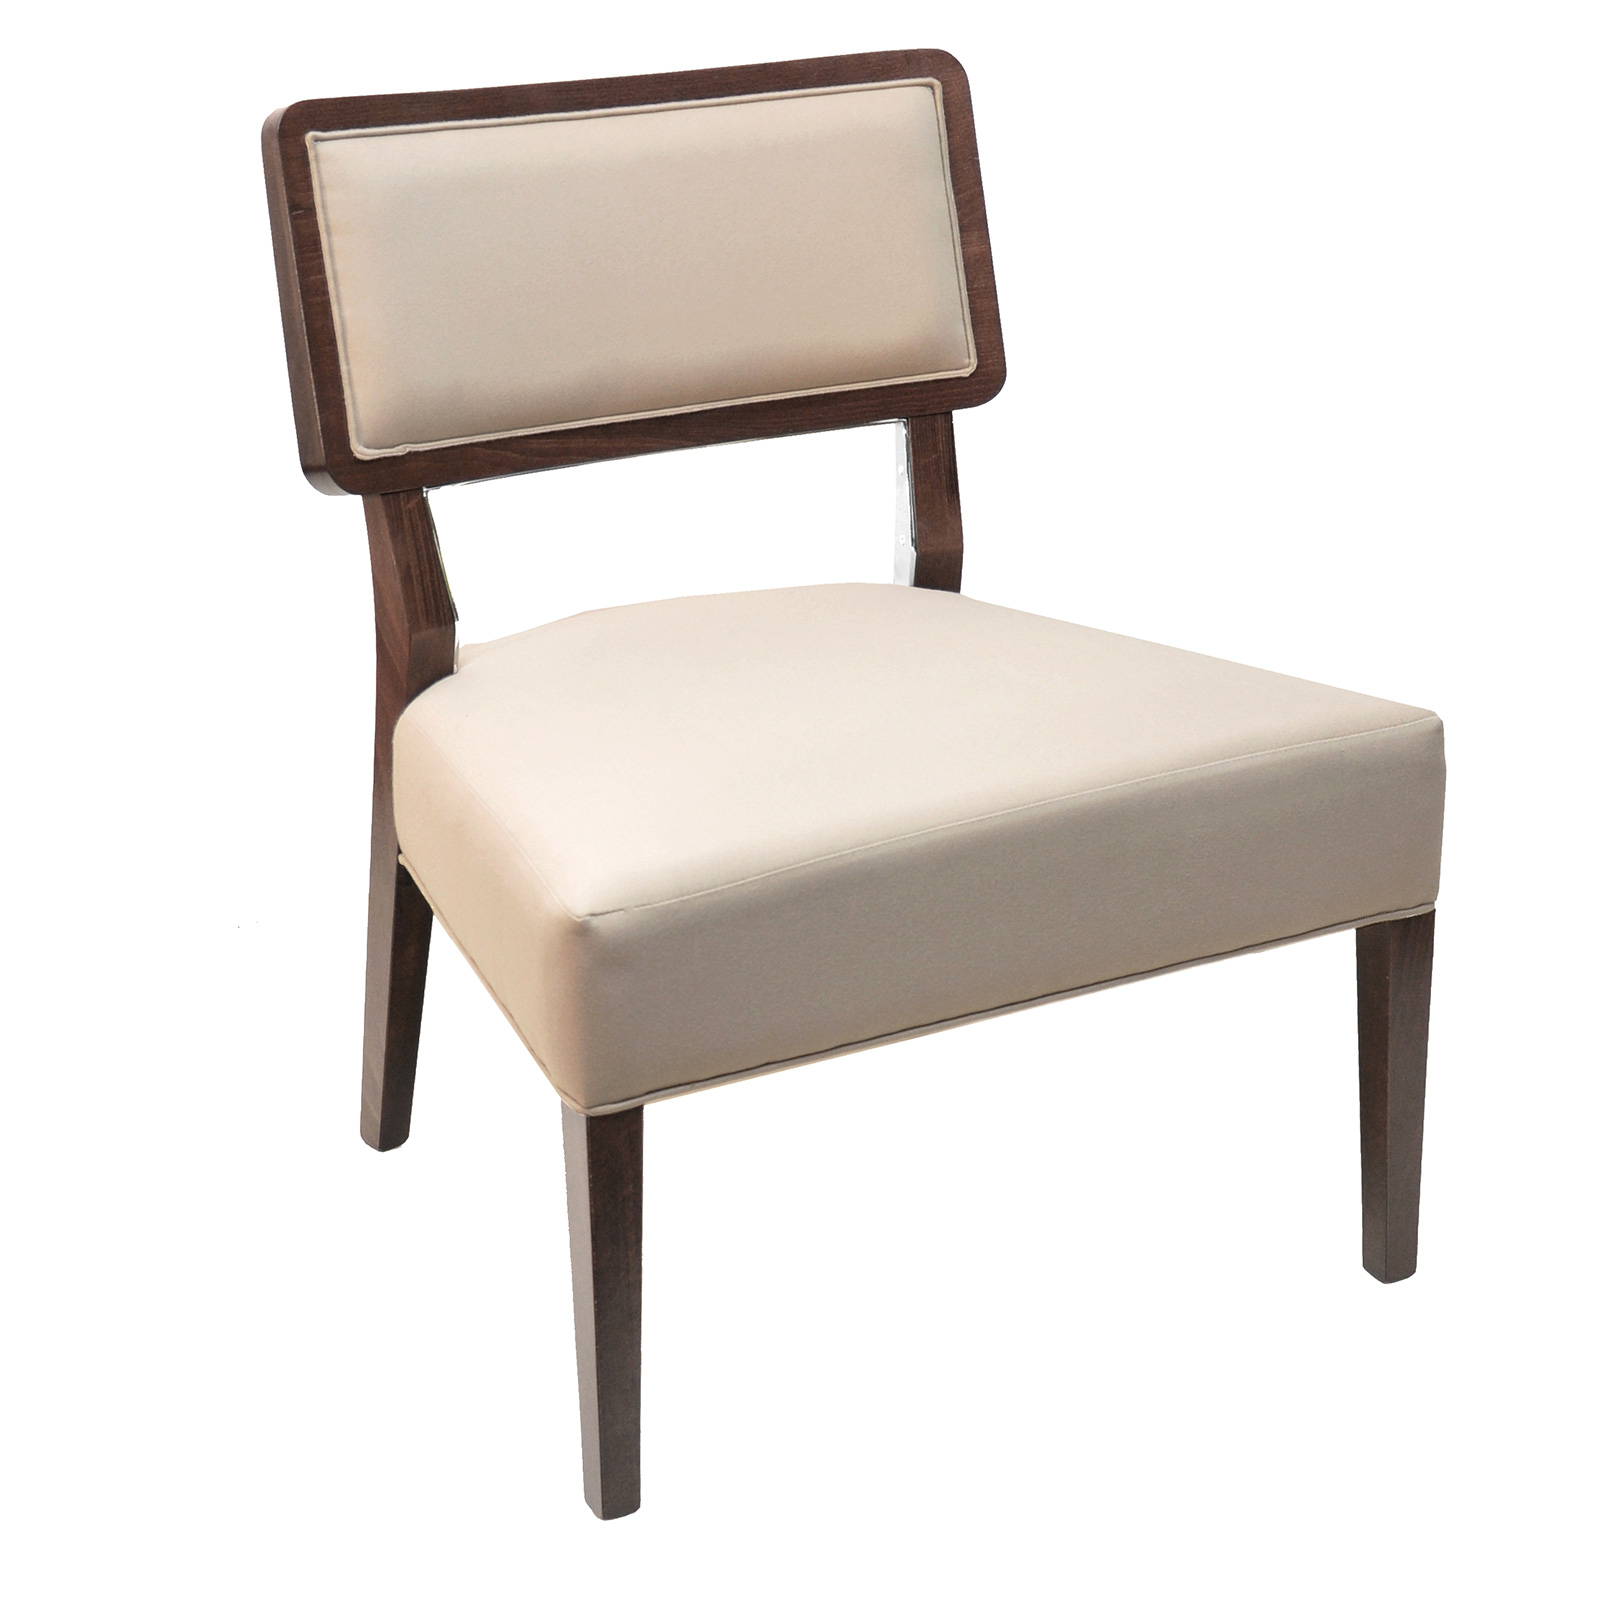 Florida Seating CN-CHRISTINEA GR5 chair, lounge, indoor